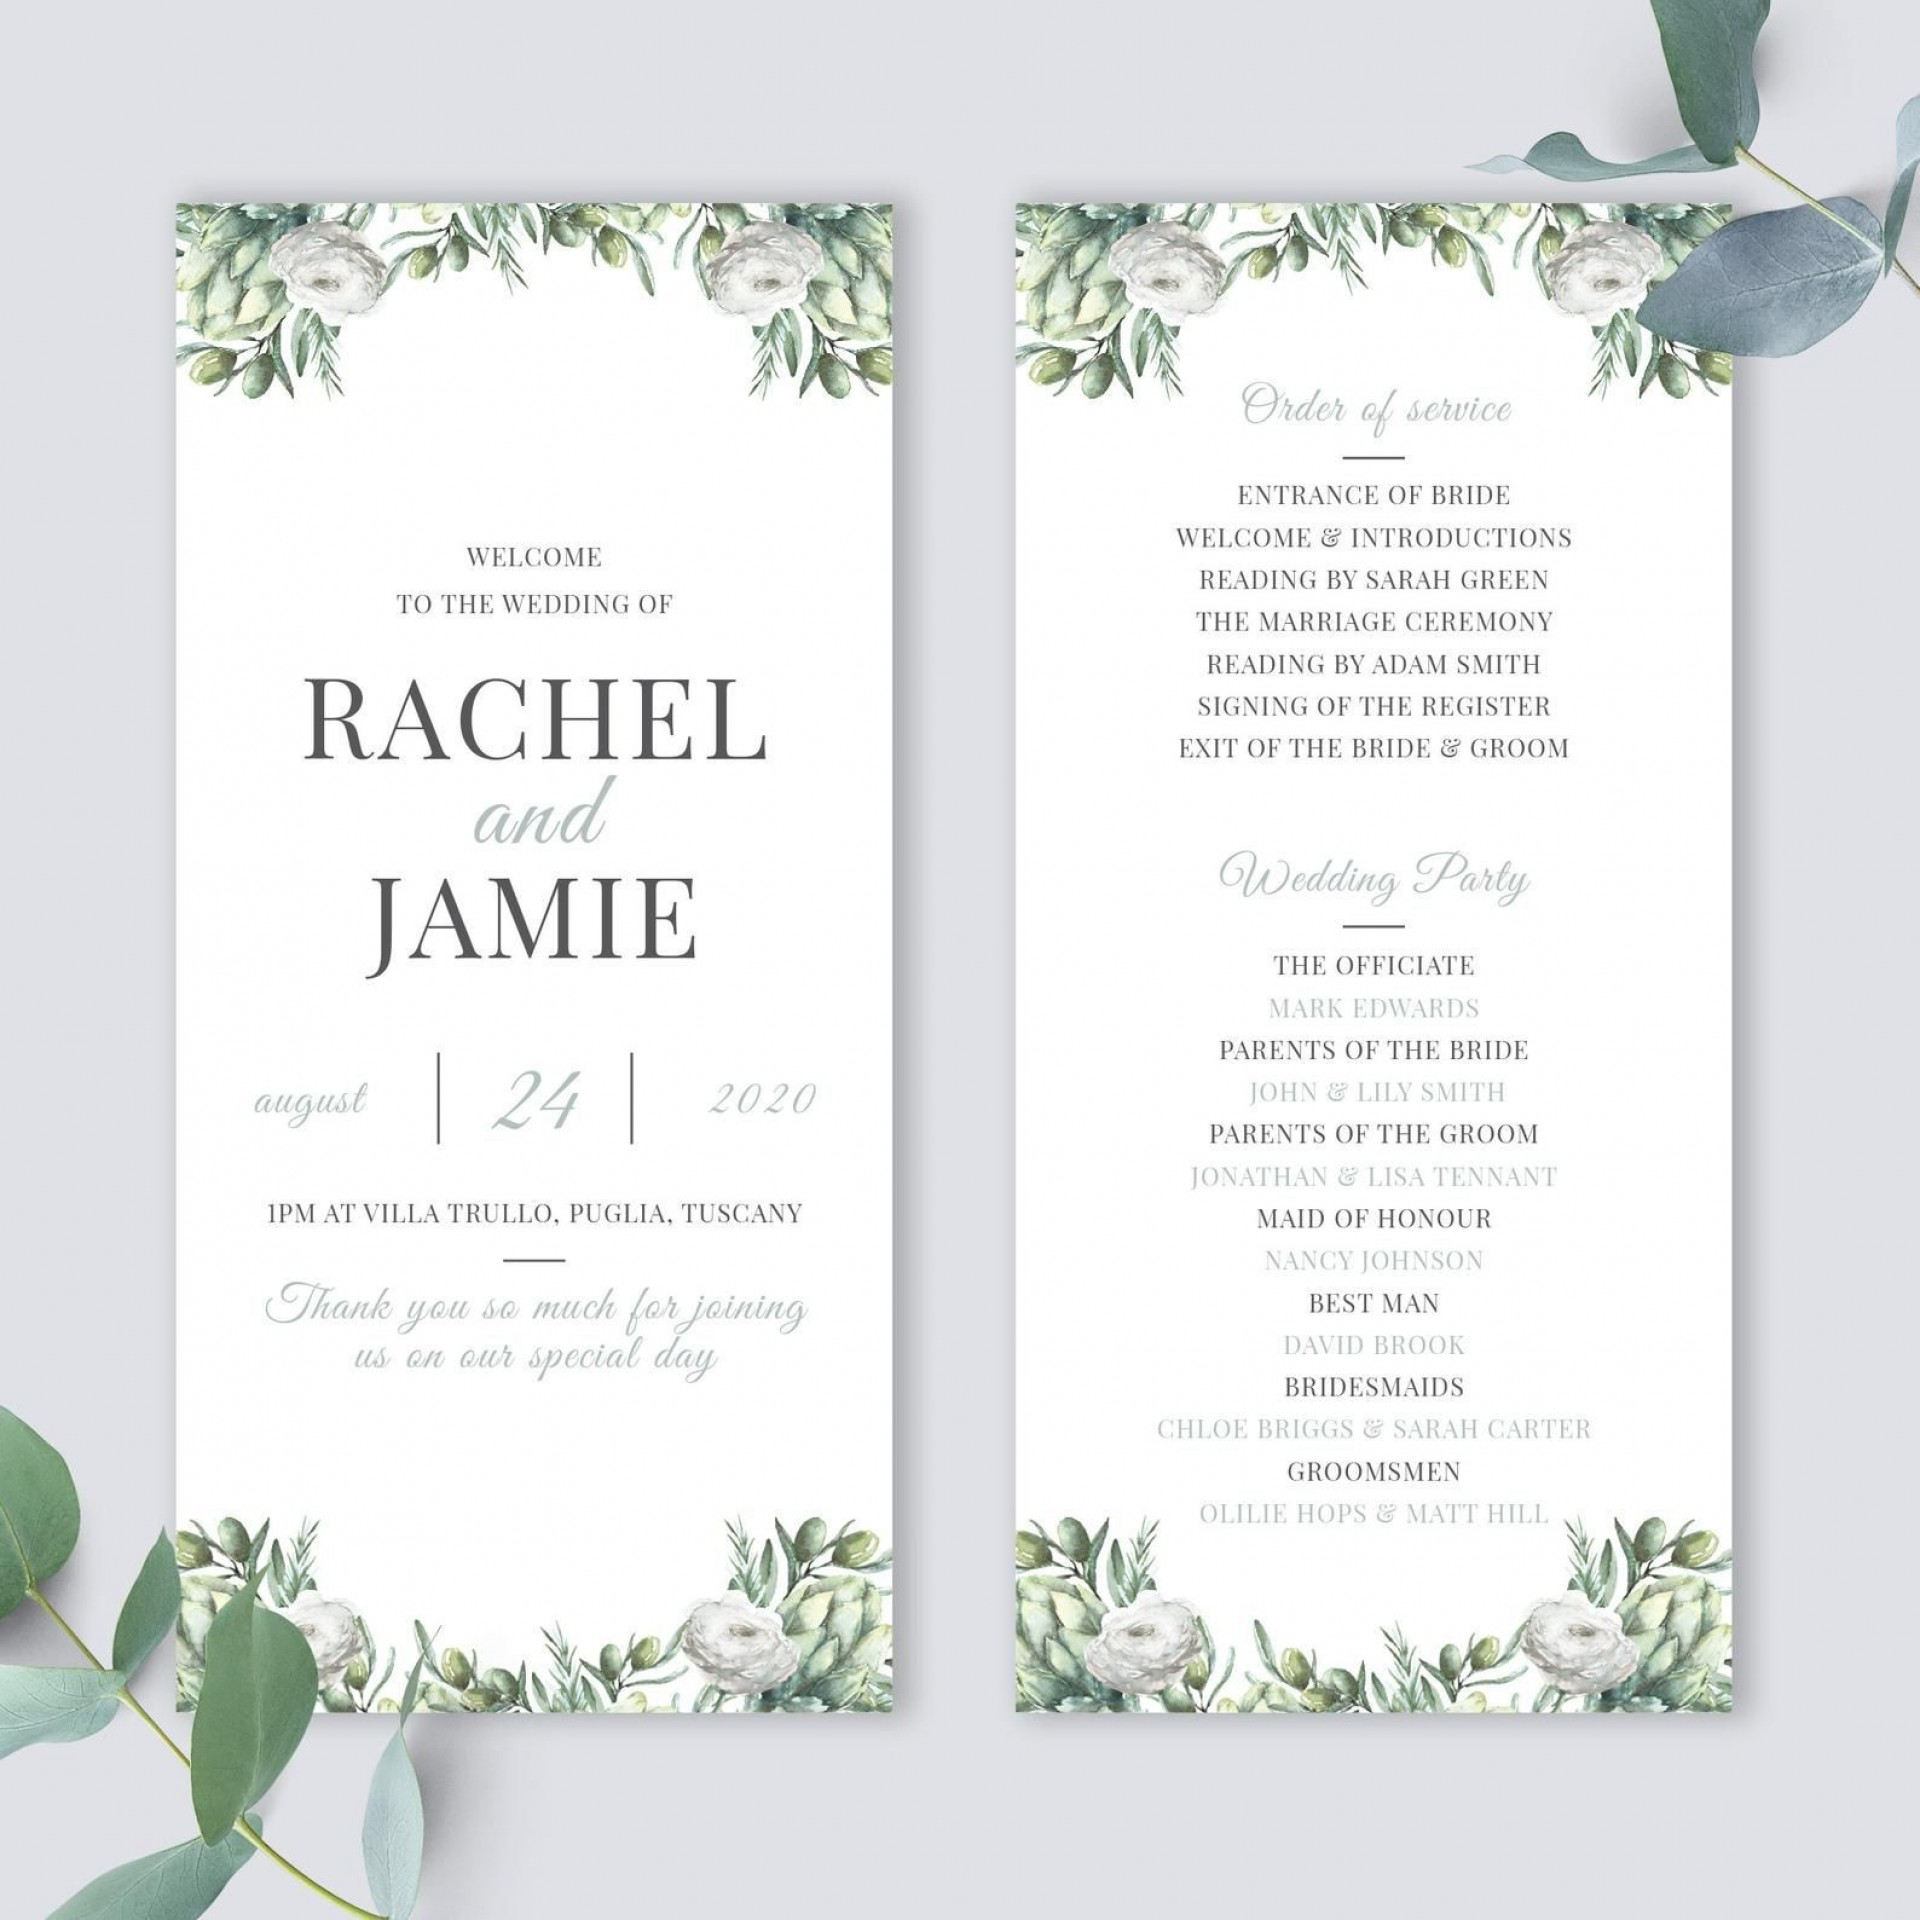 000 Unforgettable Wedding Order Of Service Template Photo  Pdf Publisher Microsoft Word1920